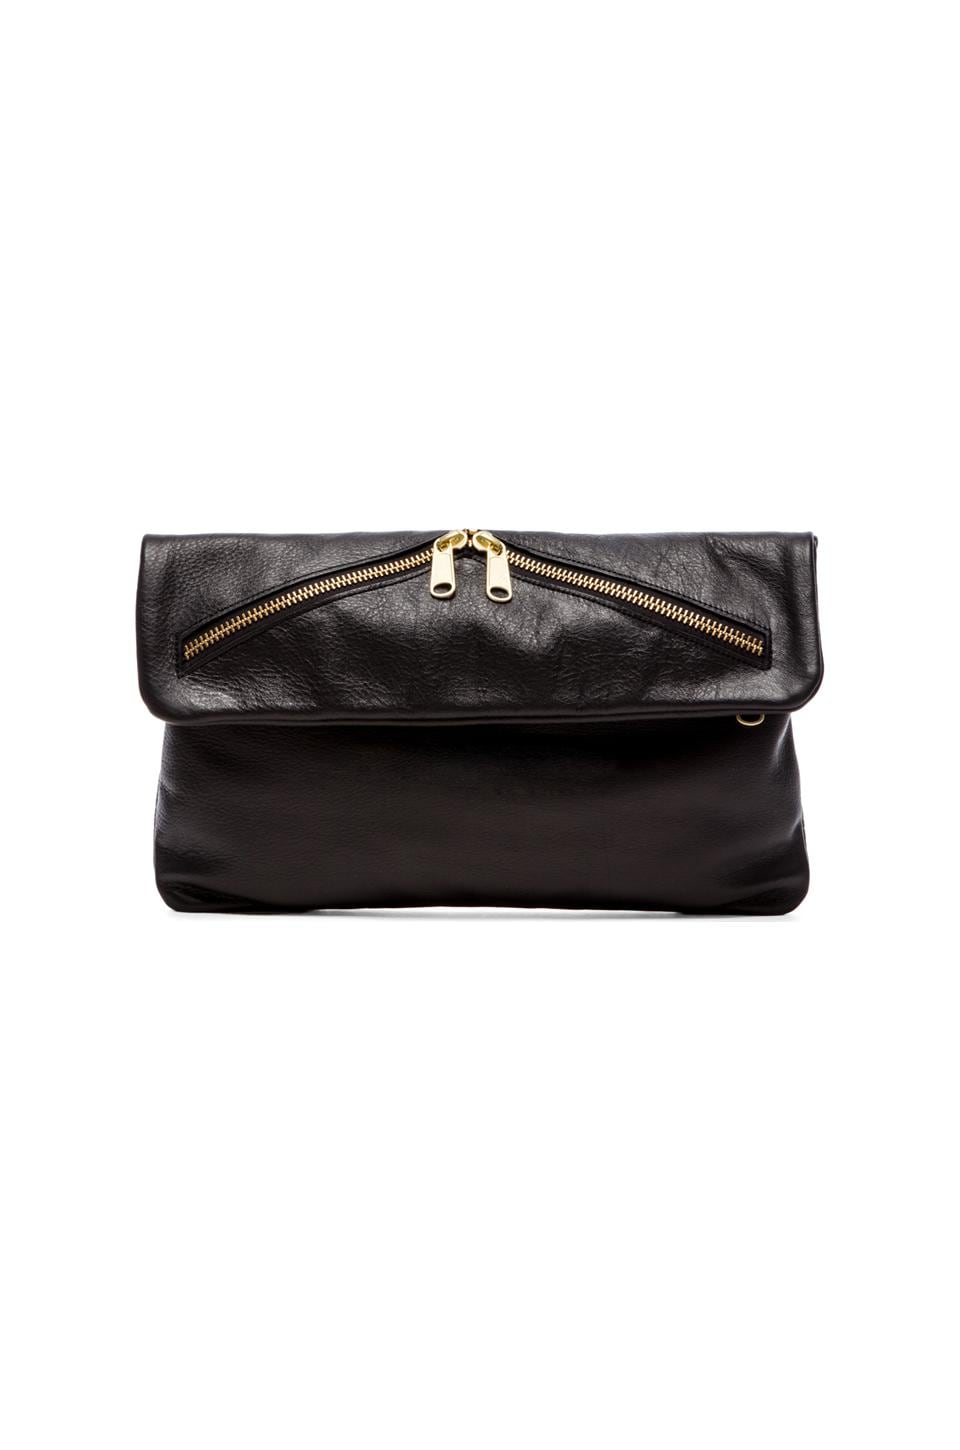 AMPERSAND AS APOSTROPHE Mailbag Clutch in Black & Gold